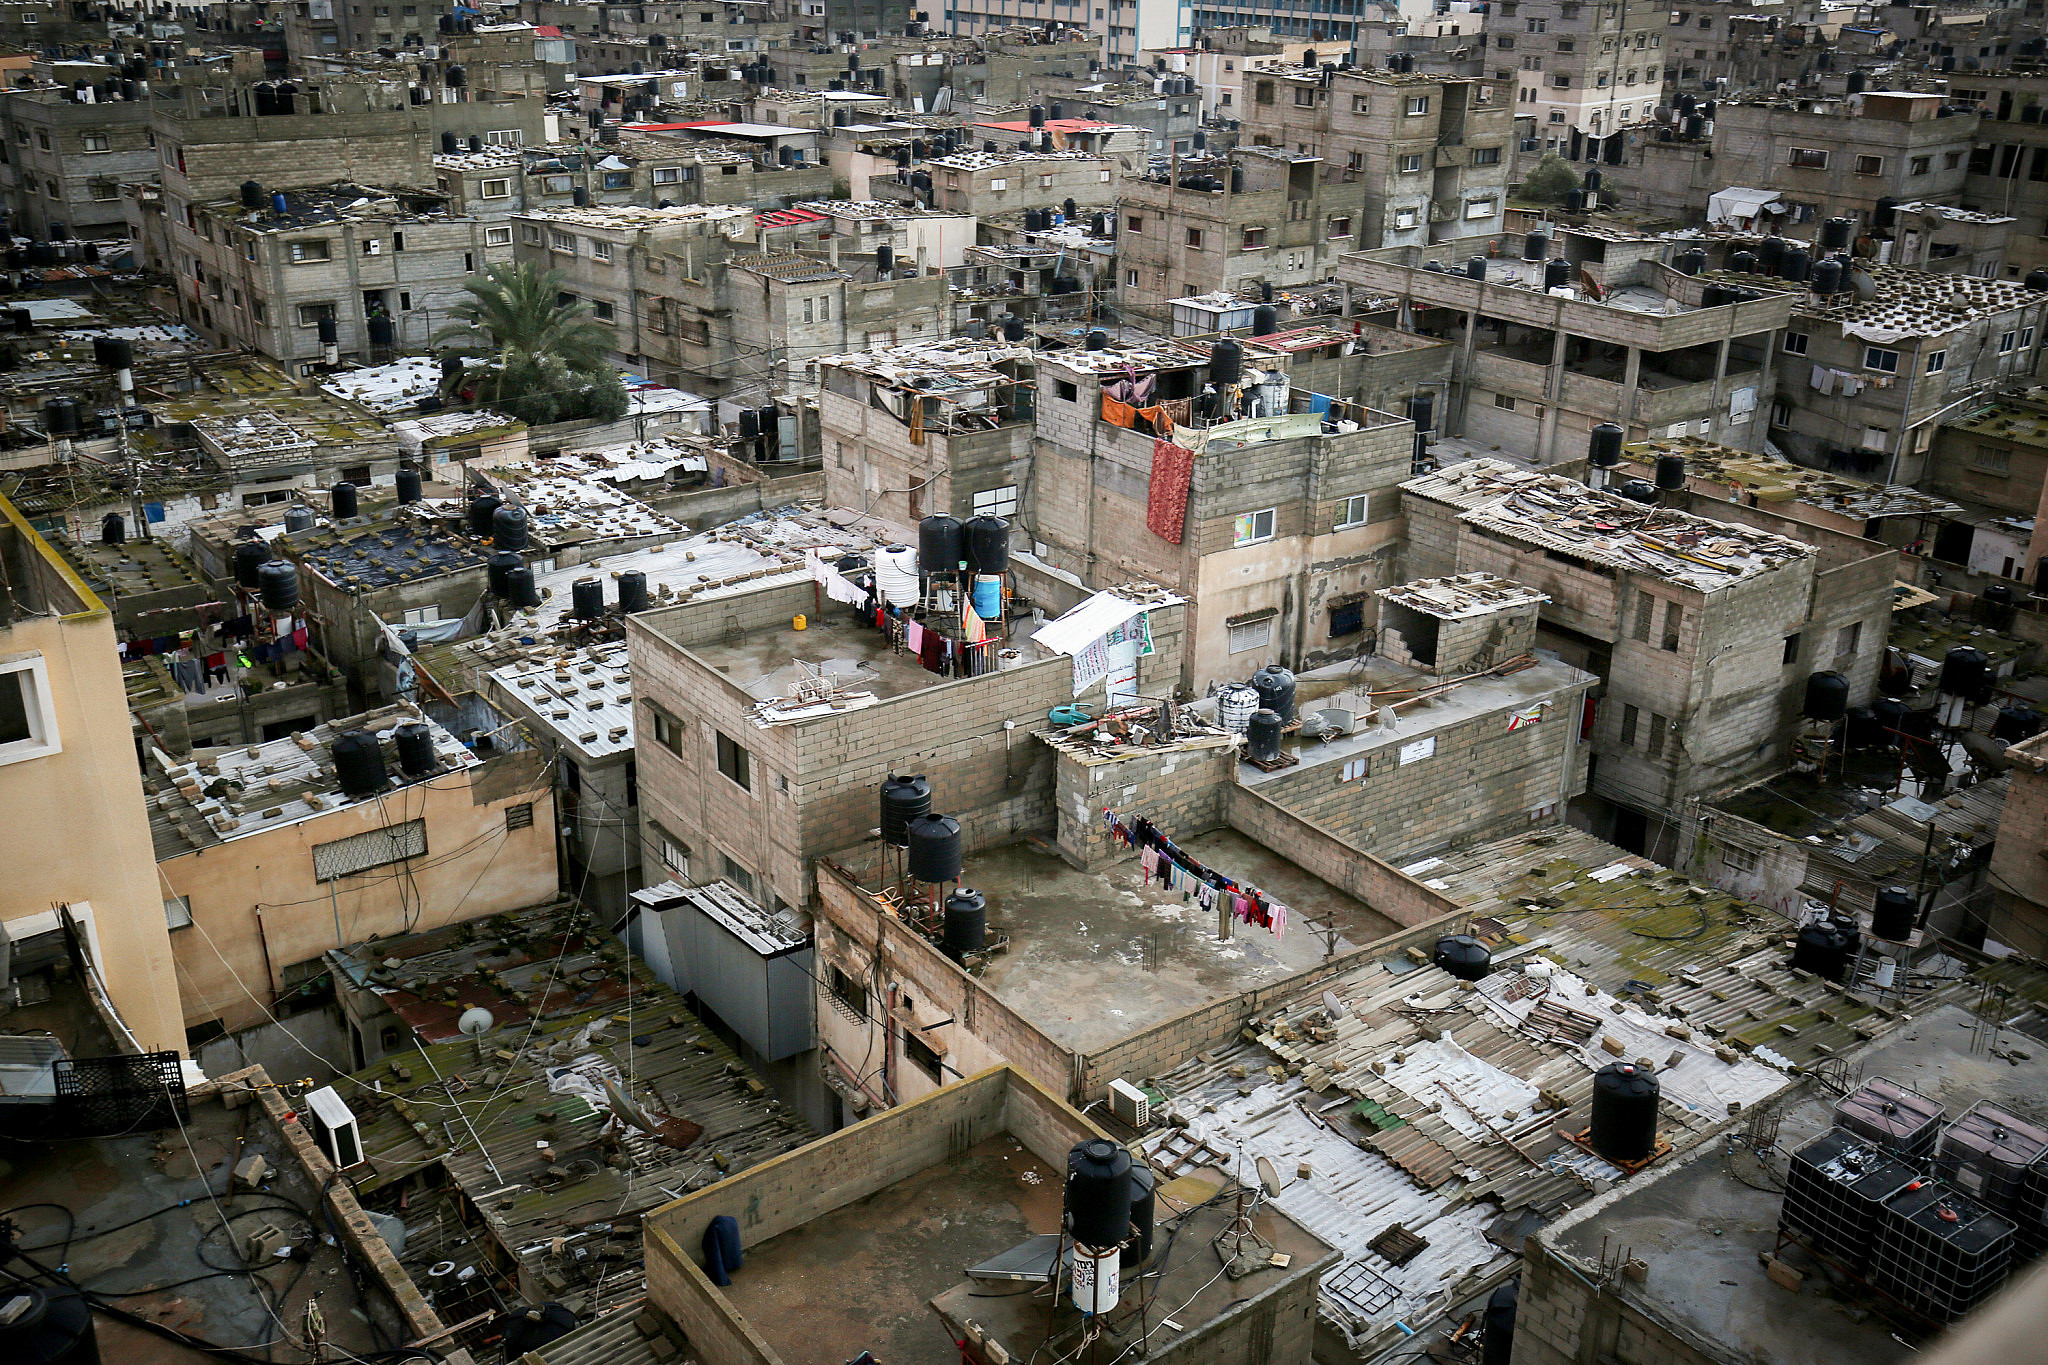 General view of Palestinian homes and buildings in Rafah, southern Gaza Strip, February 9, 2020. (Abed Rahim Khatib/Flash90)